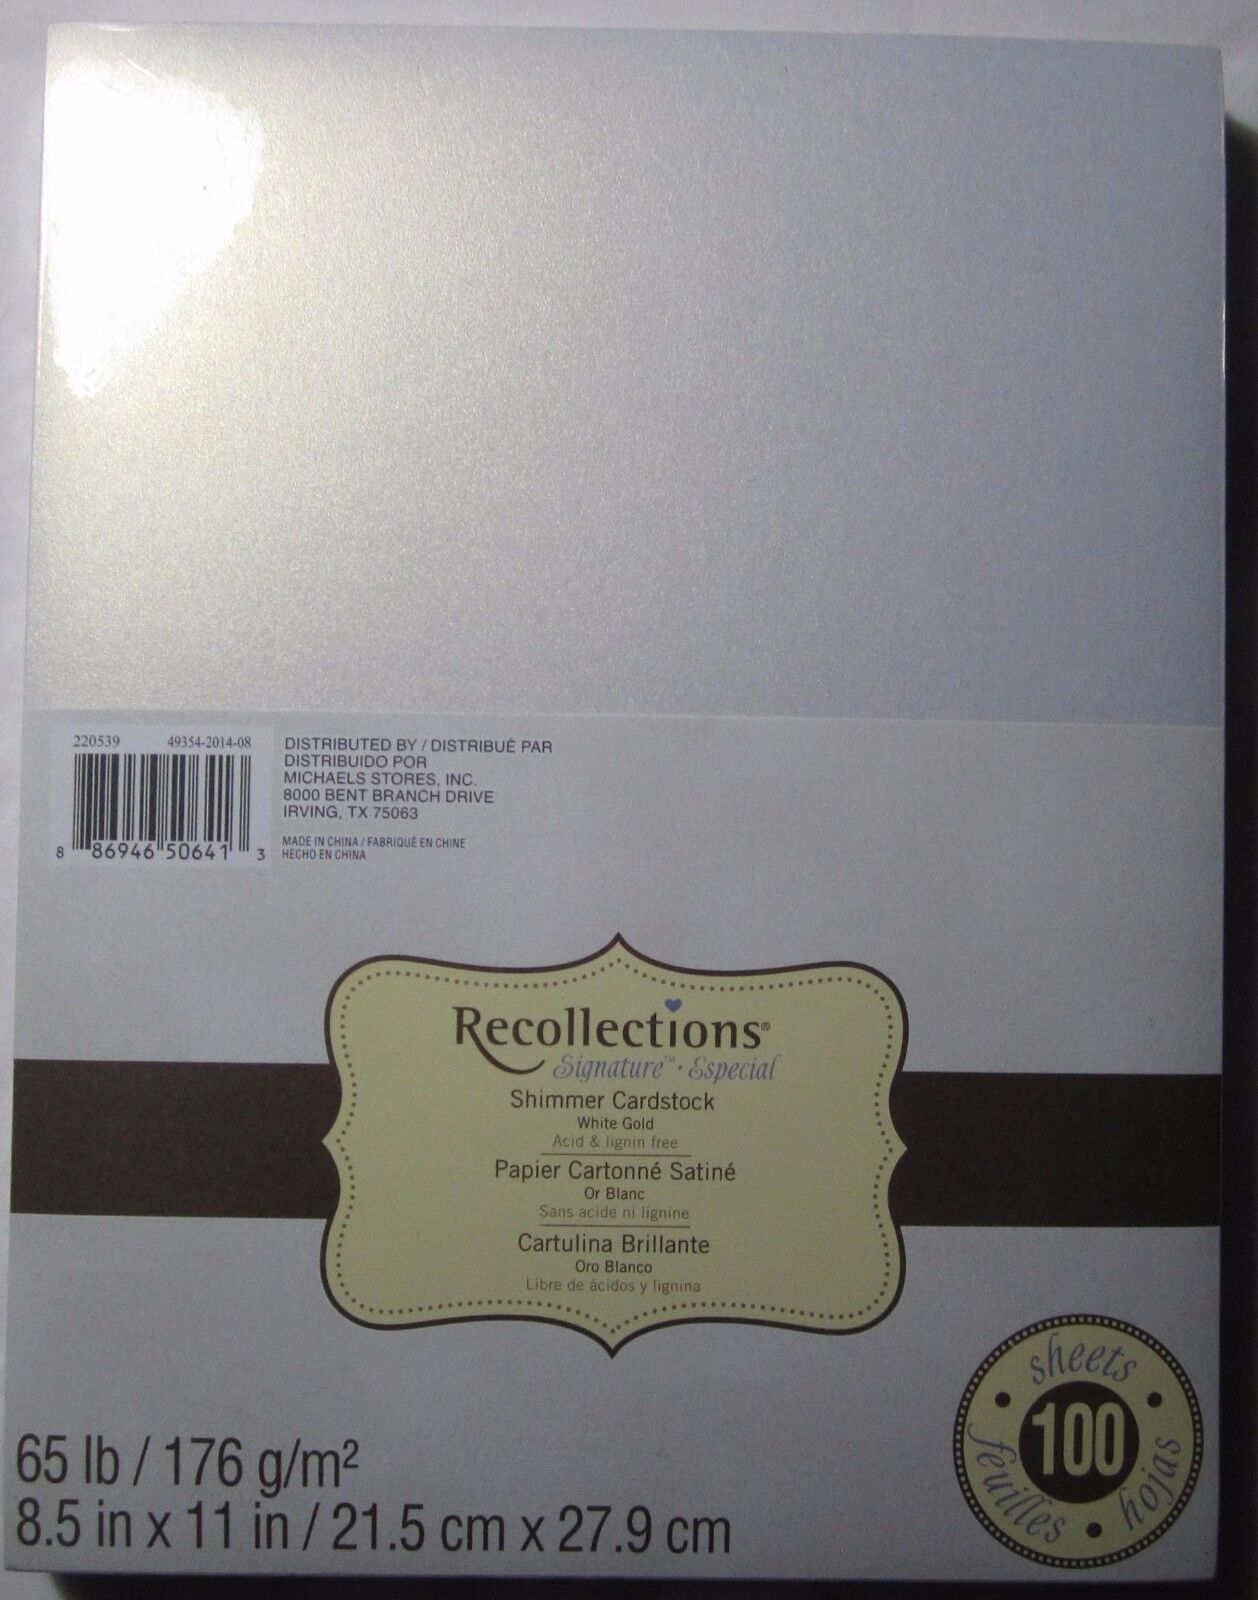 Gold color cardstock paper 5x7 - Picture 1 Of 10